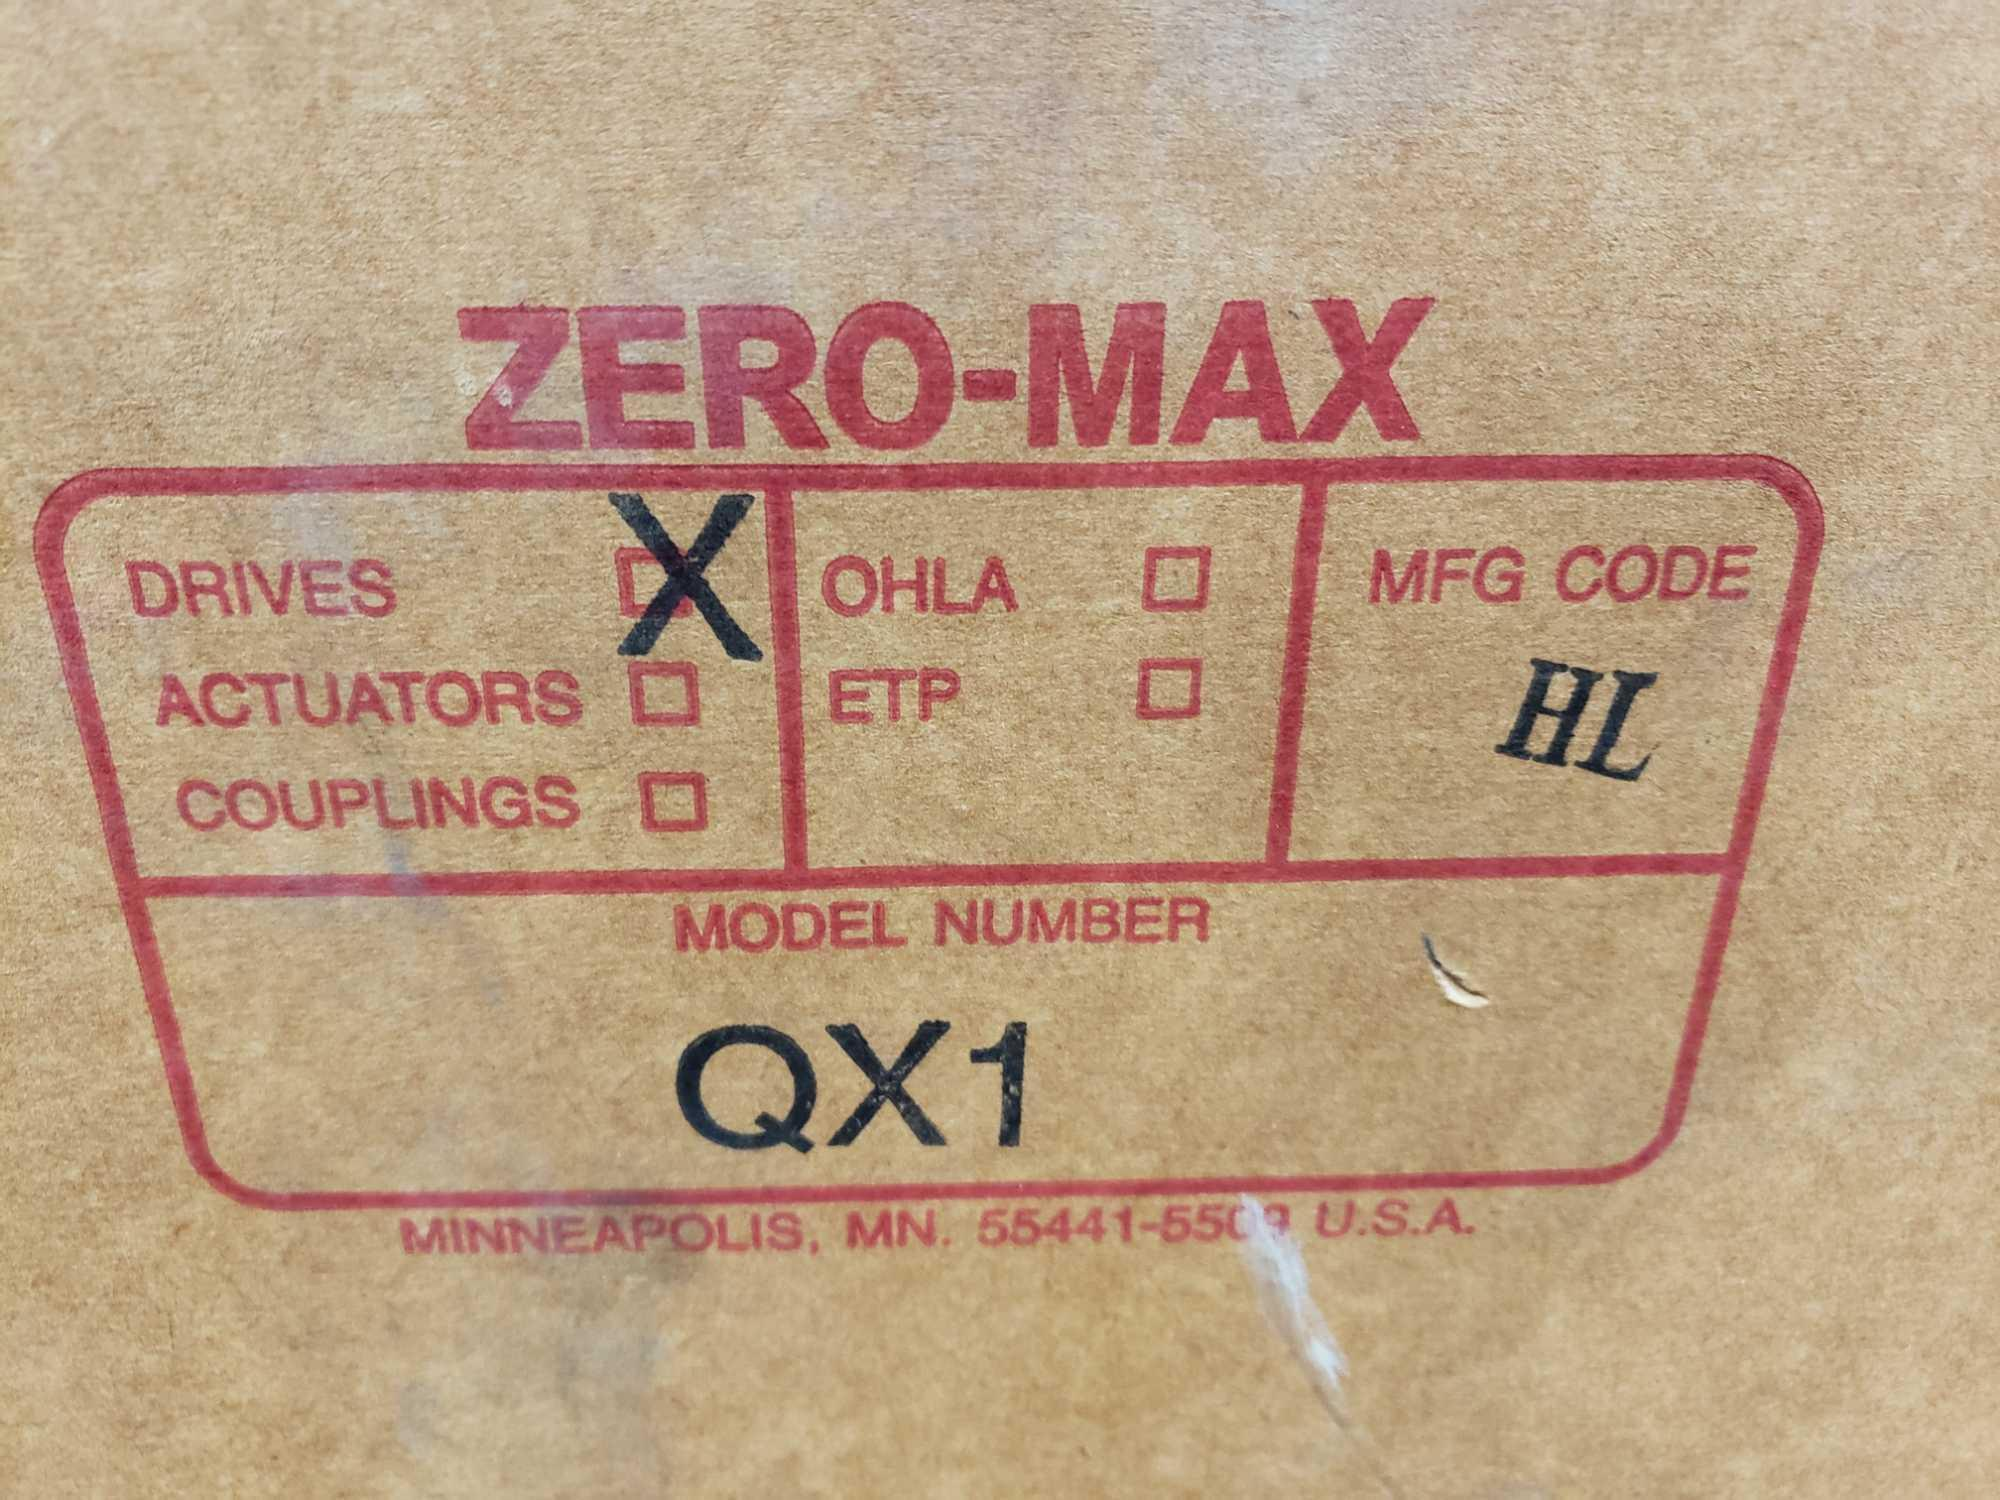 Zero-max drive power block model QX1 CCW output rotation, 100lb torque, 0-400 speed range. New. - Image 3 of 3